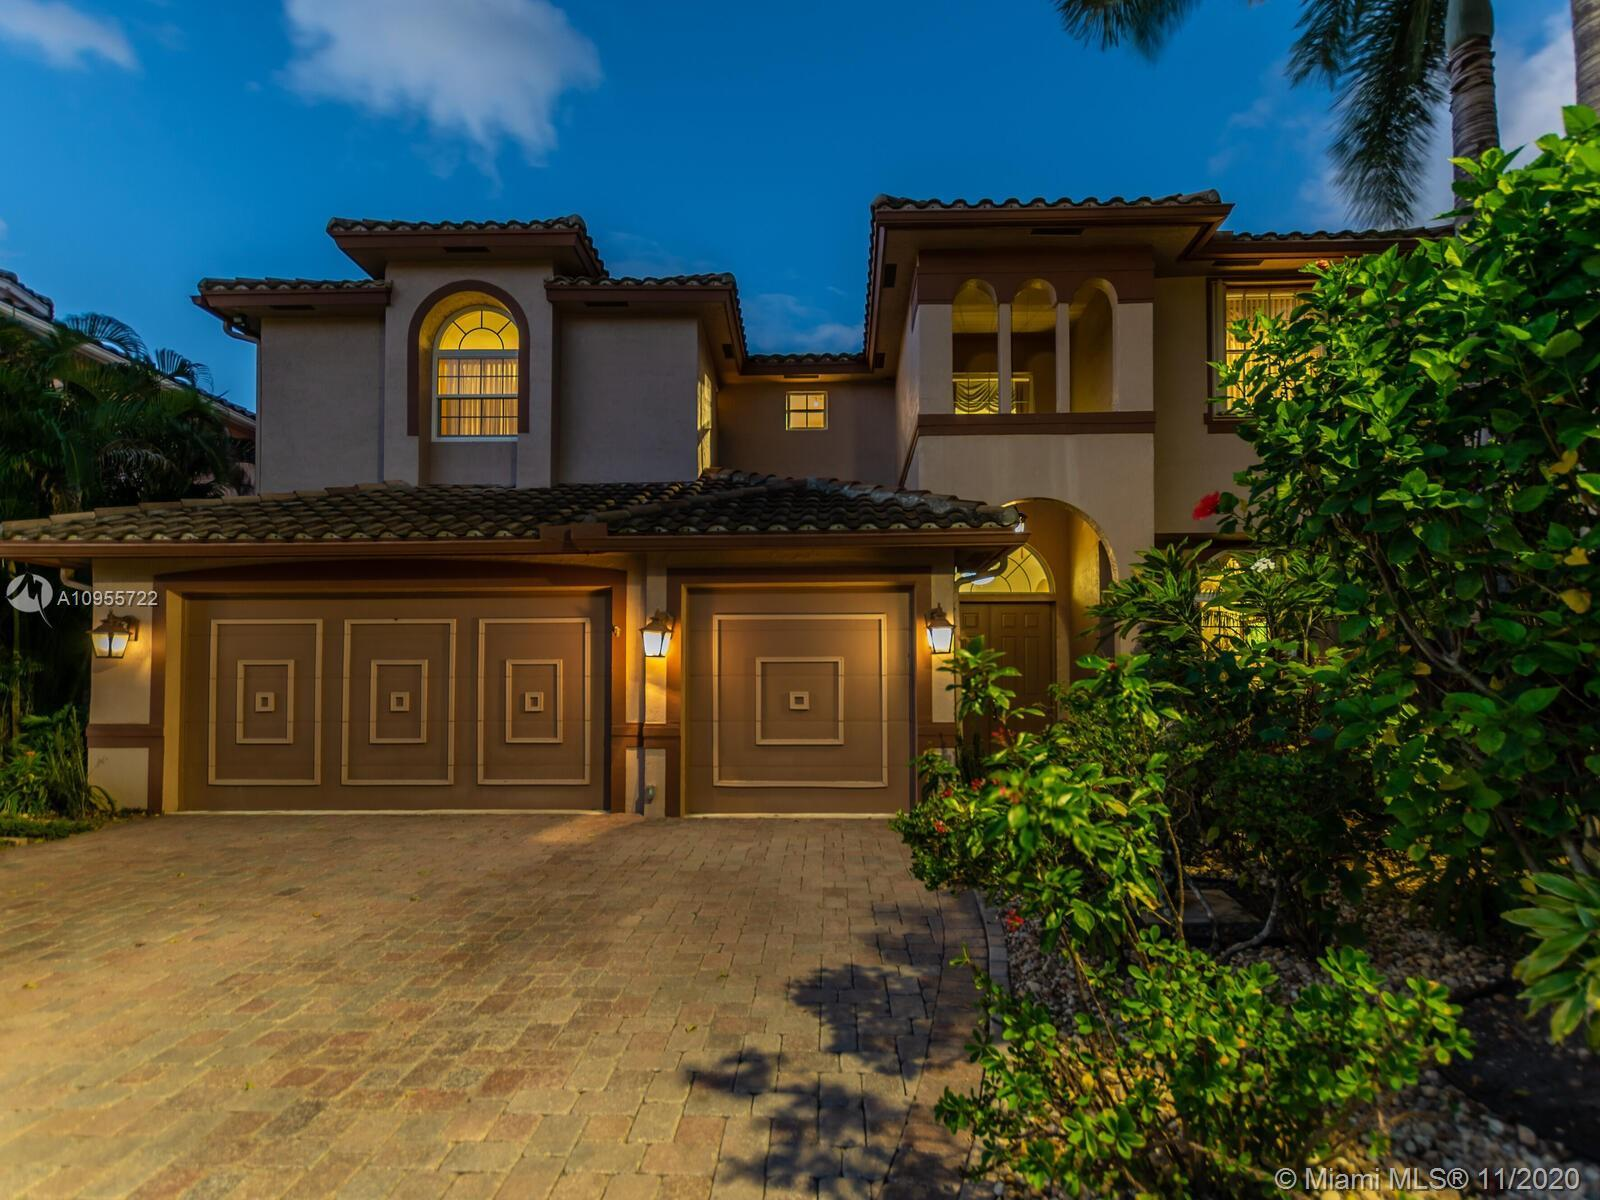 Impressive 5 bed |4 bath pool home, w/an elevator & 12' ceilings, nested on a private lot offers gen